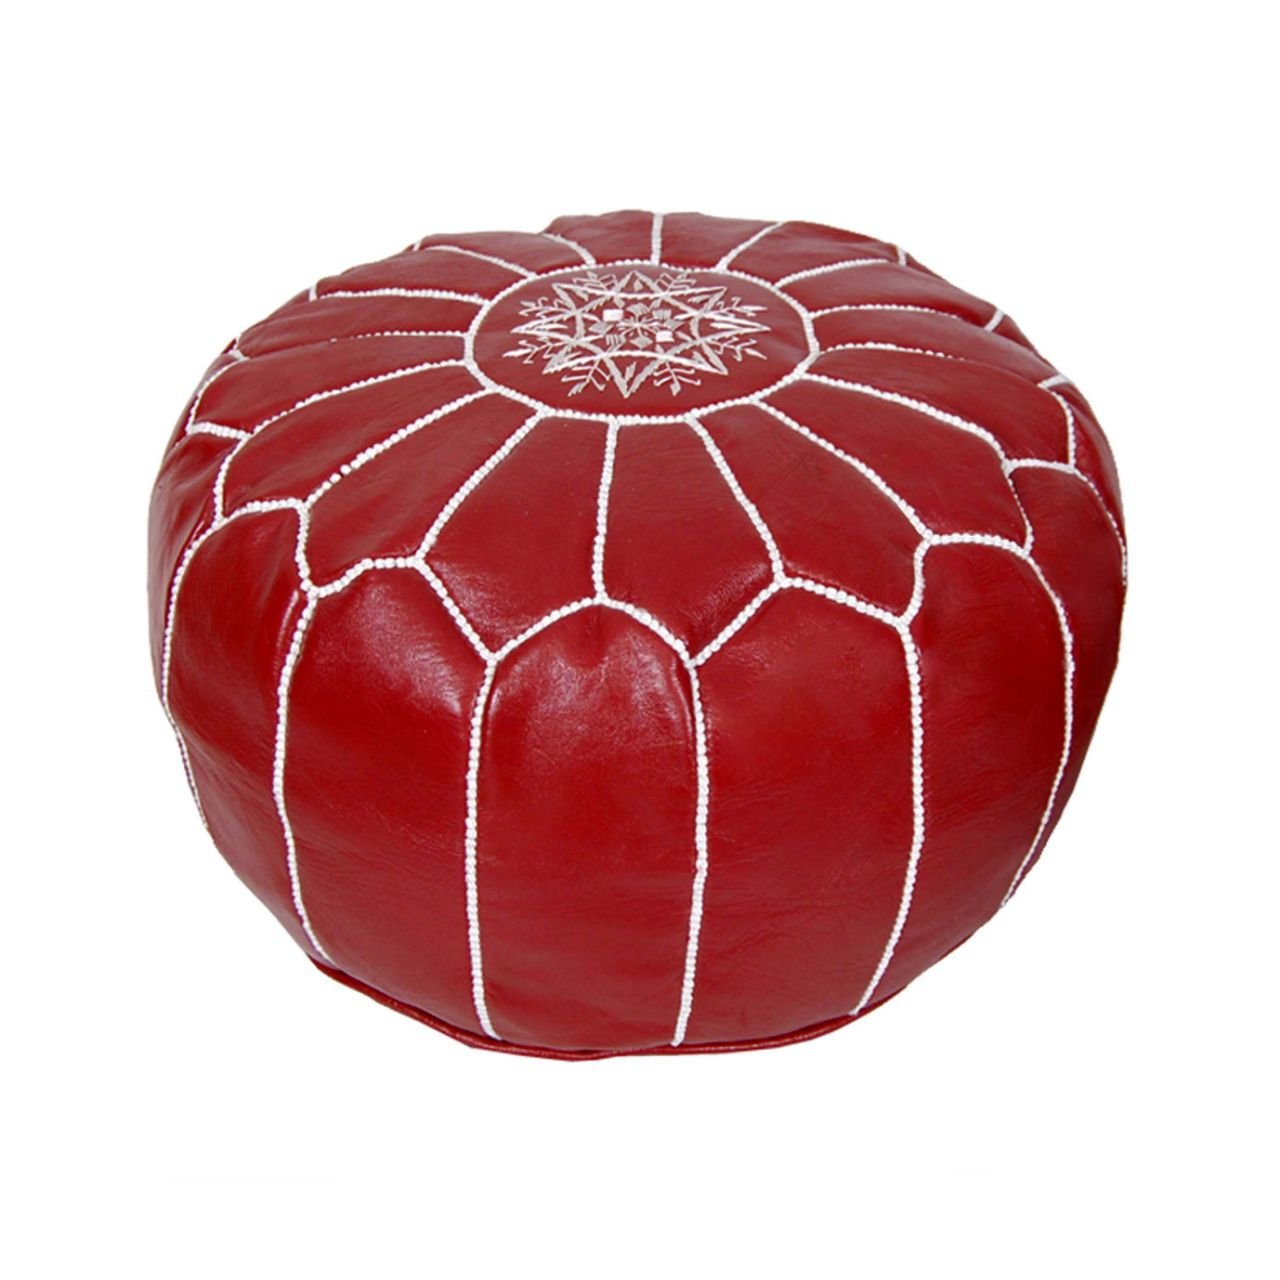 Moroccan Pouf Ottoman Footstool (Leather) Genuine Hand-Stitched Seating | Unstuffed | Living Room, Bedroom, Sitting Area | Deep Red | Exclusive Designs